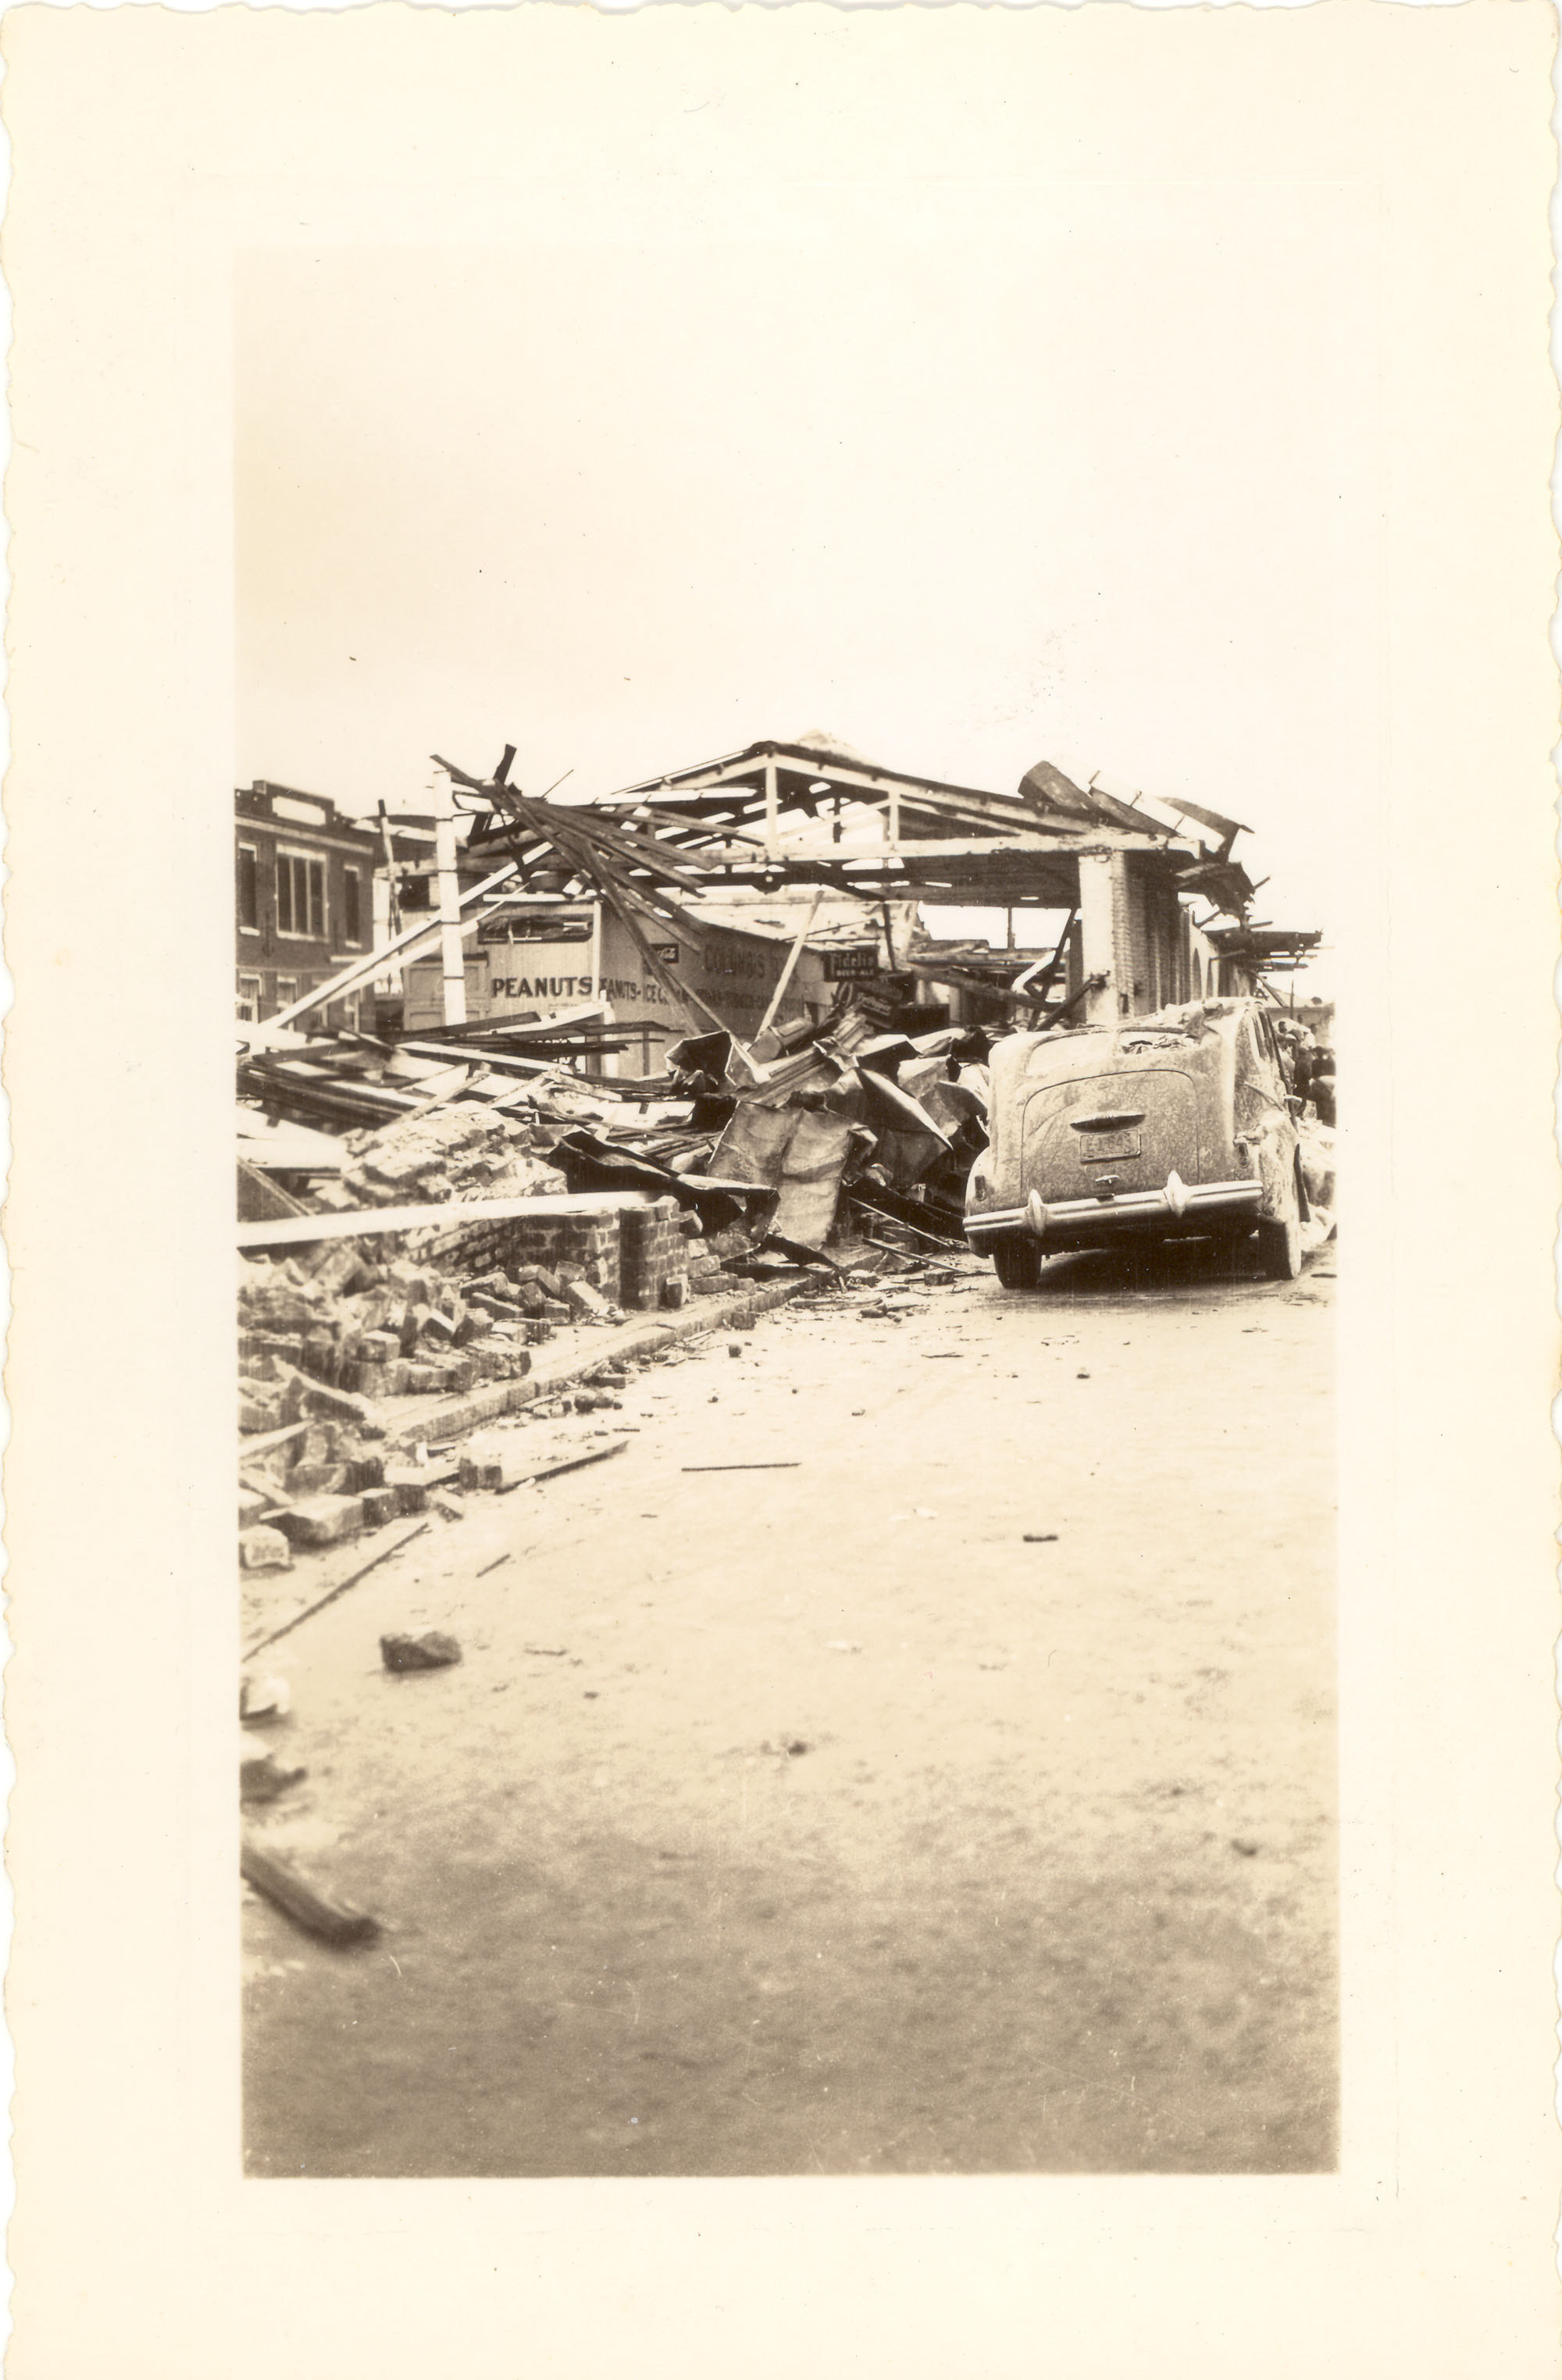 Market Street After the 1938 Tornadoes